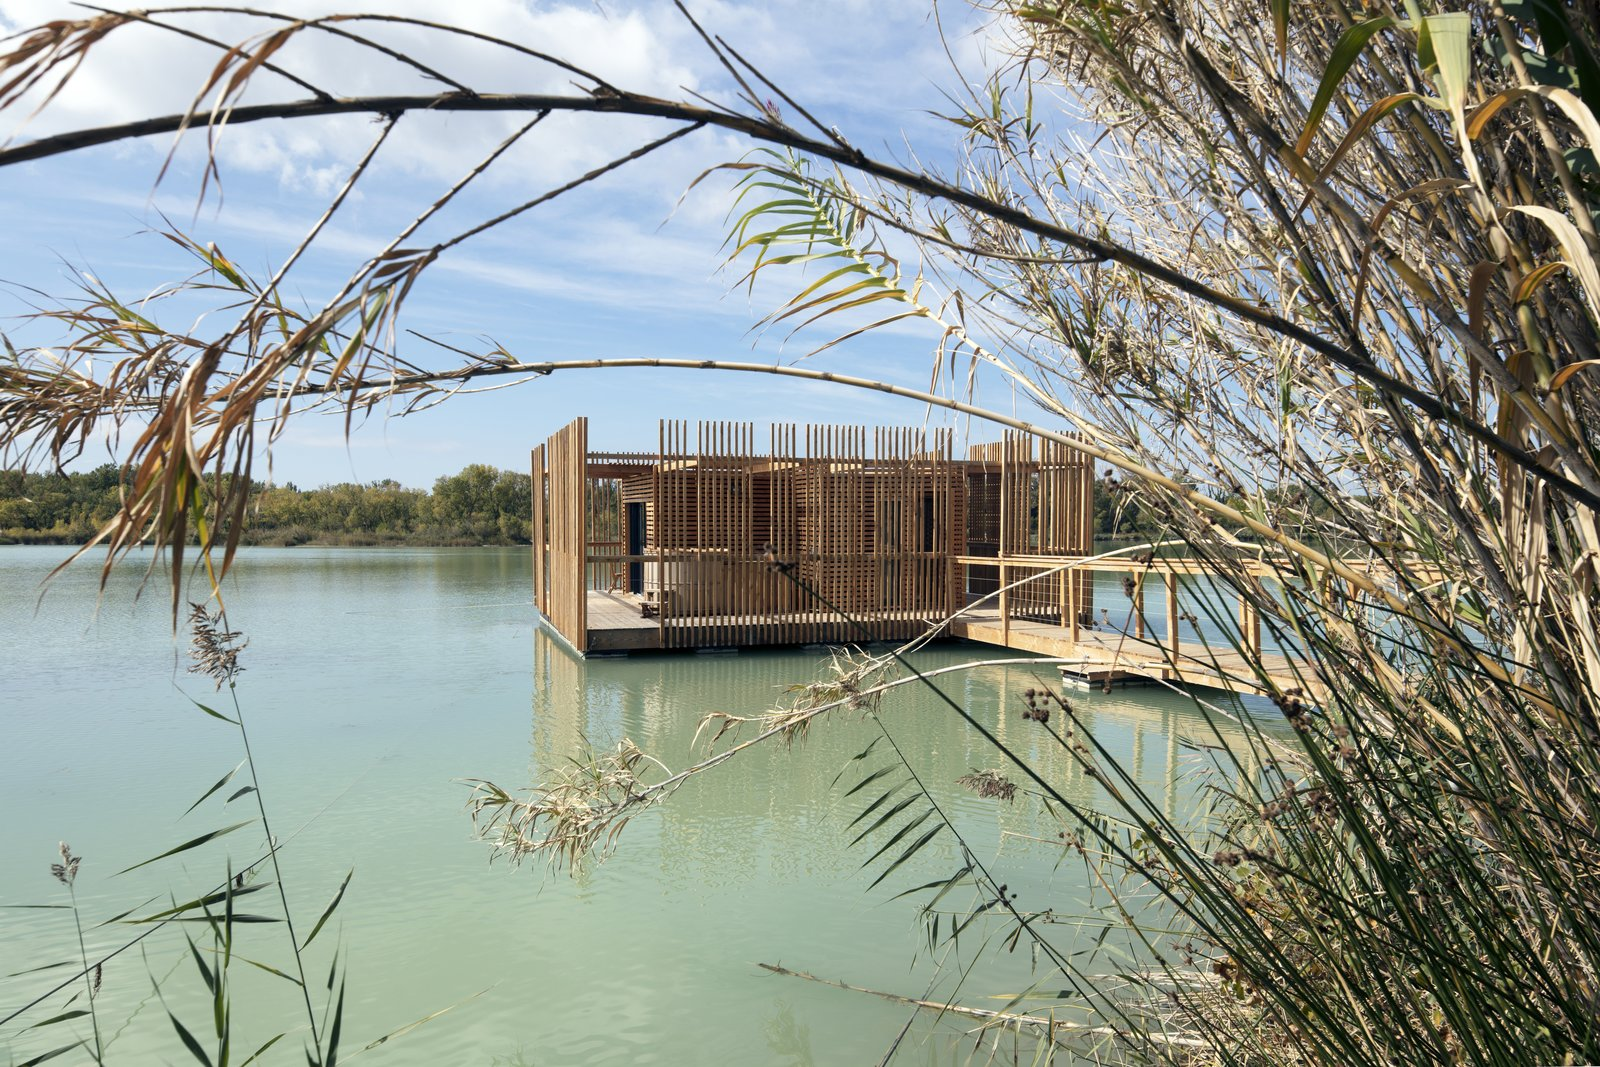 The architecture almost evokes primitive constructions in the midst of the lake's reeds.